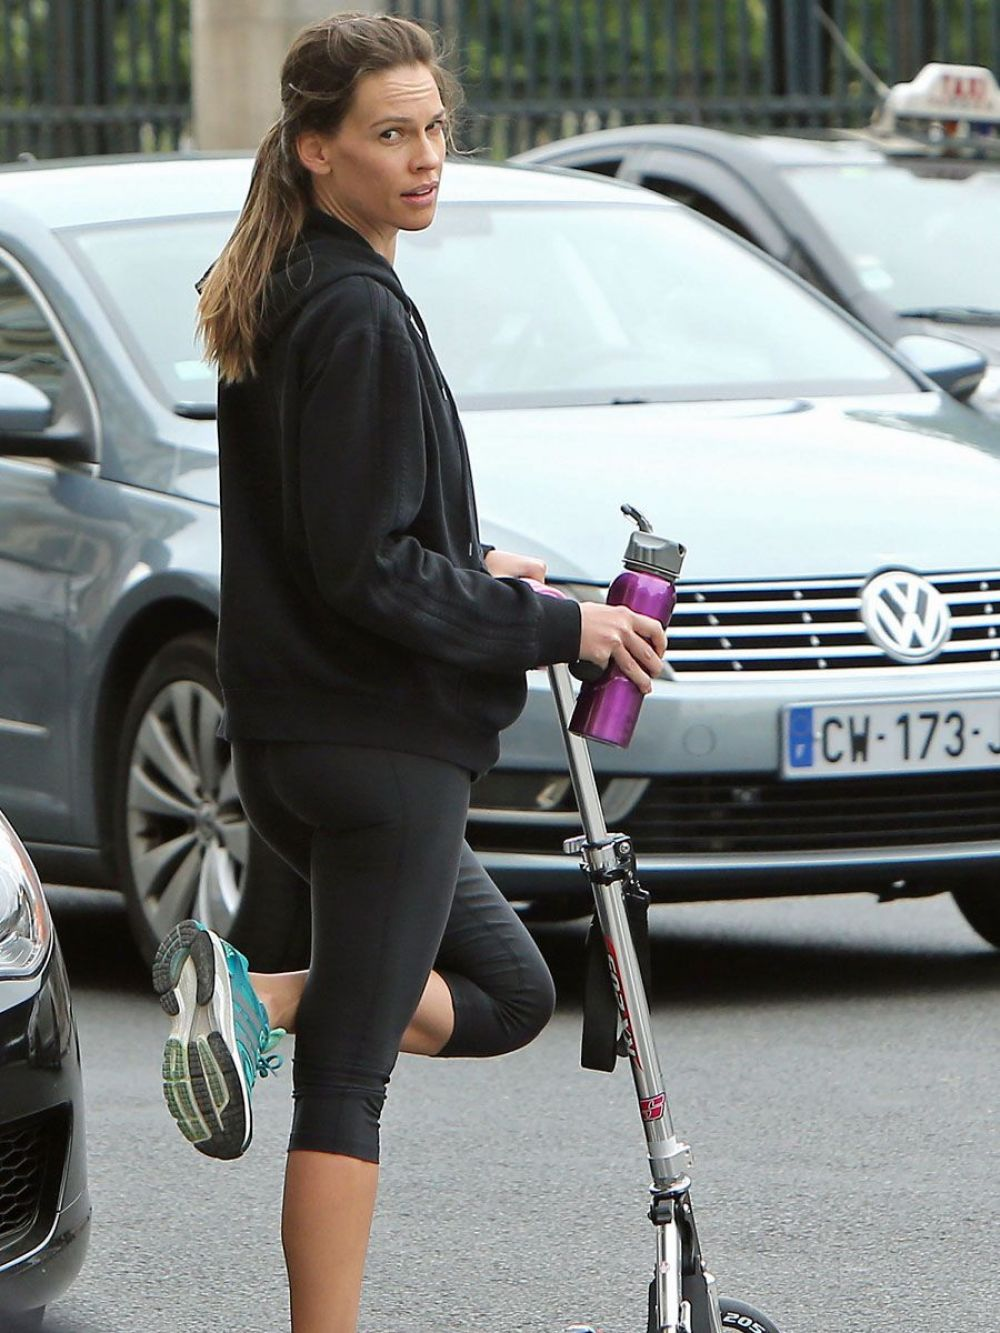 HILARY SWANK in Leggings Out and About in Paris